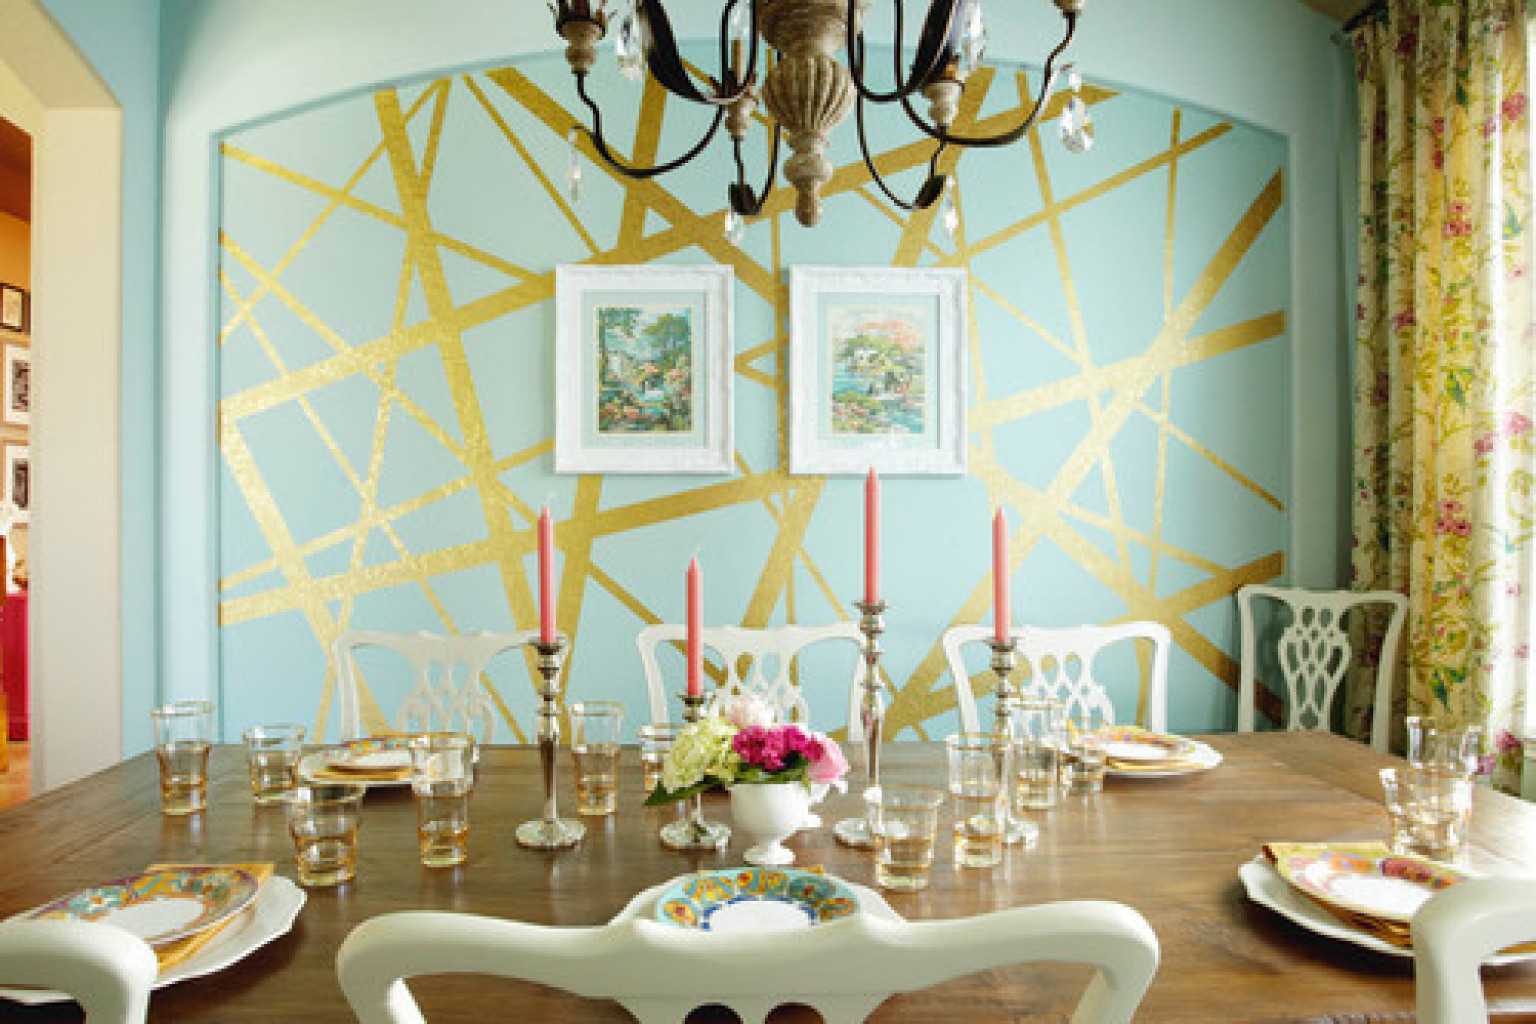 8 Incredible Interior Paint Ideas From Real Homes That Turn A Wall Into A Masterpiece PHOTOS